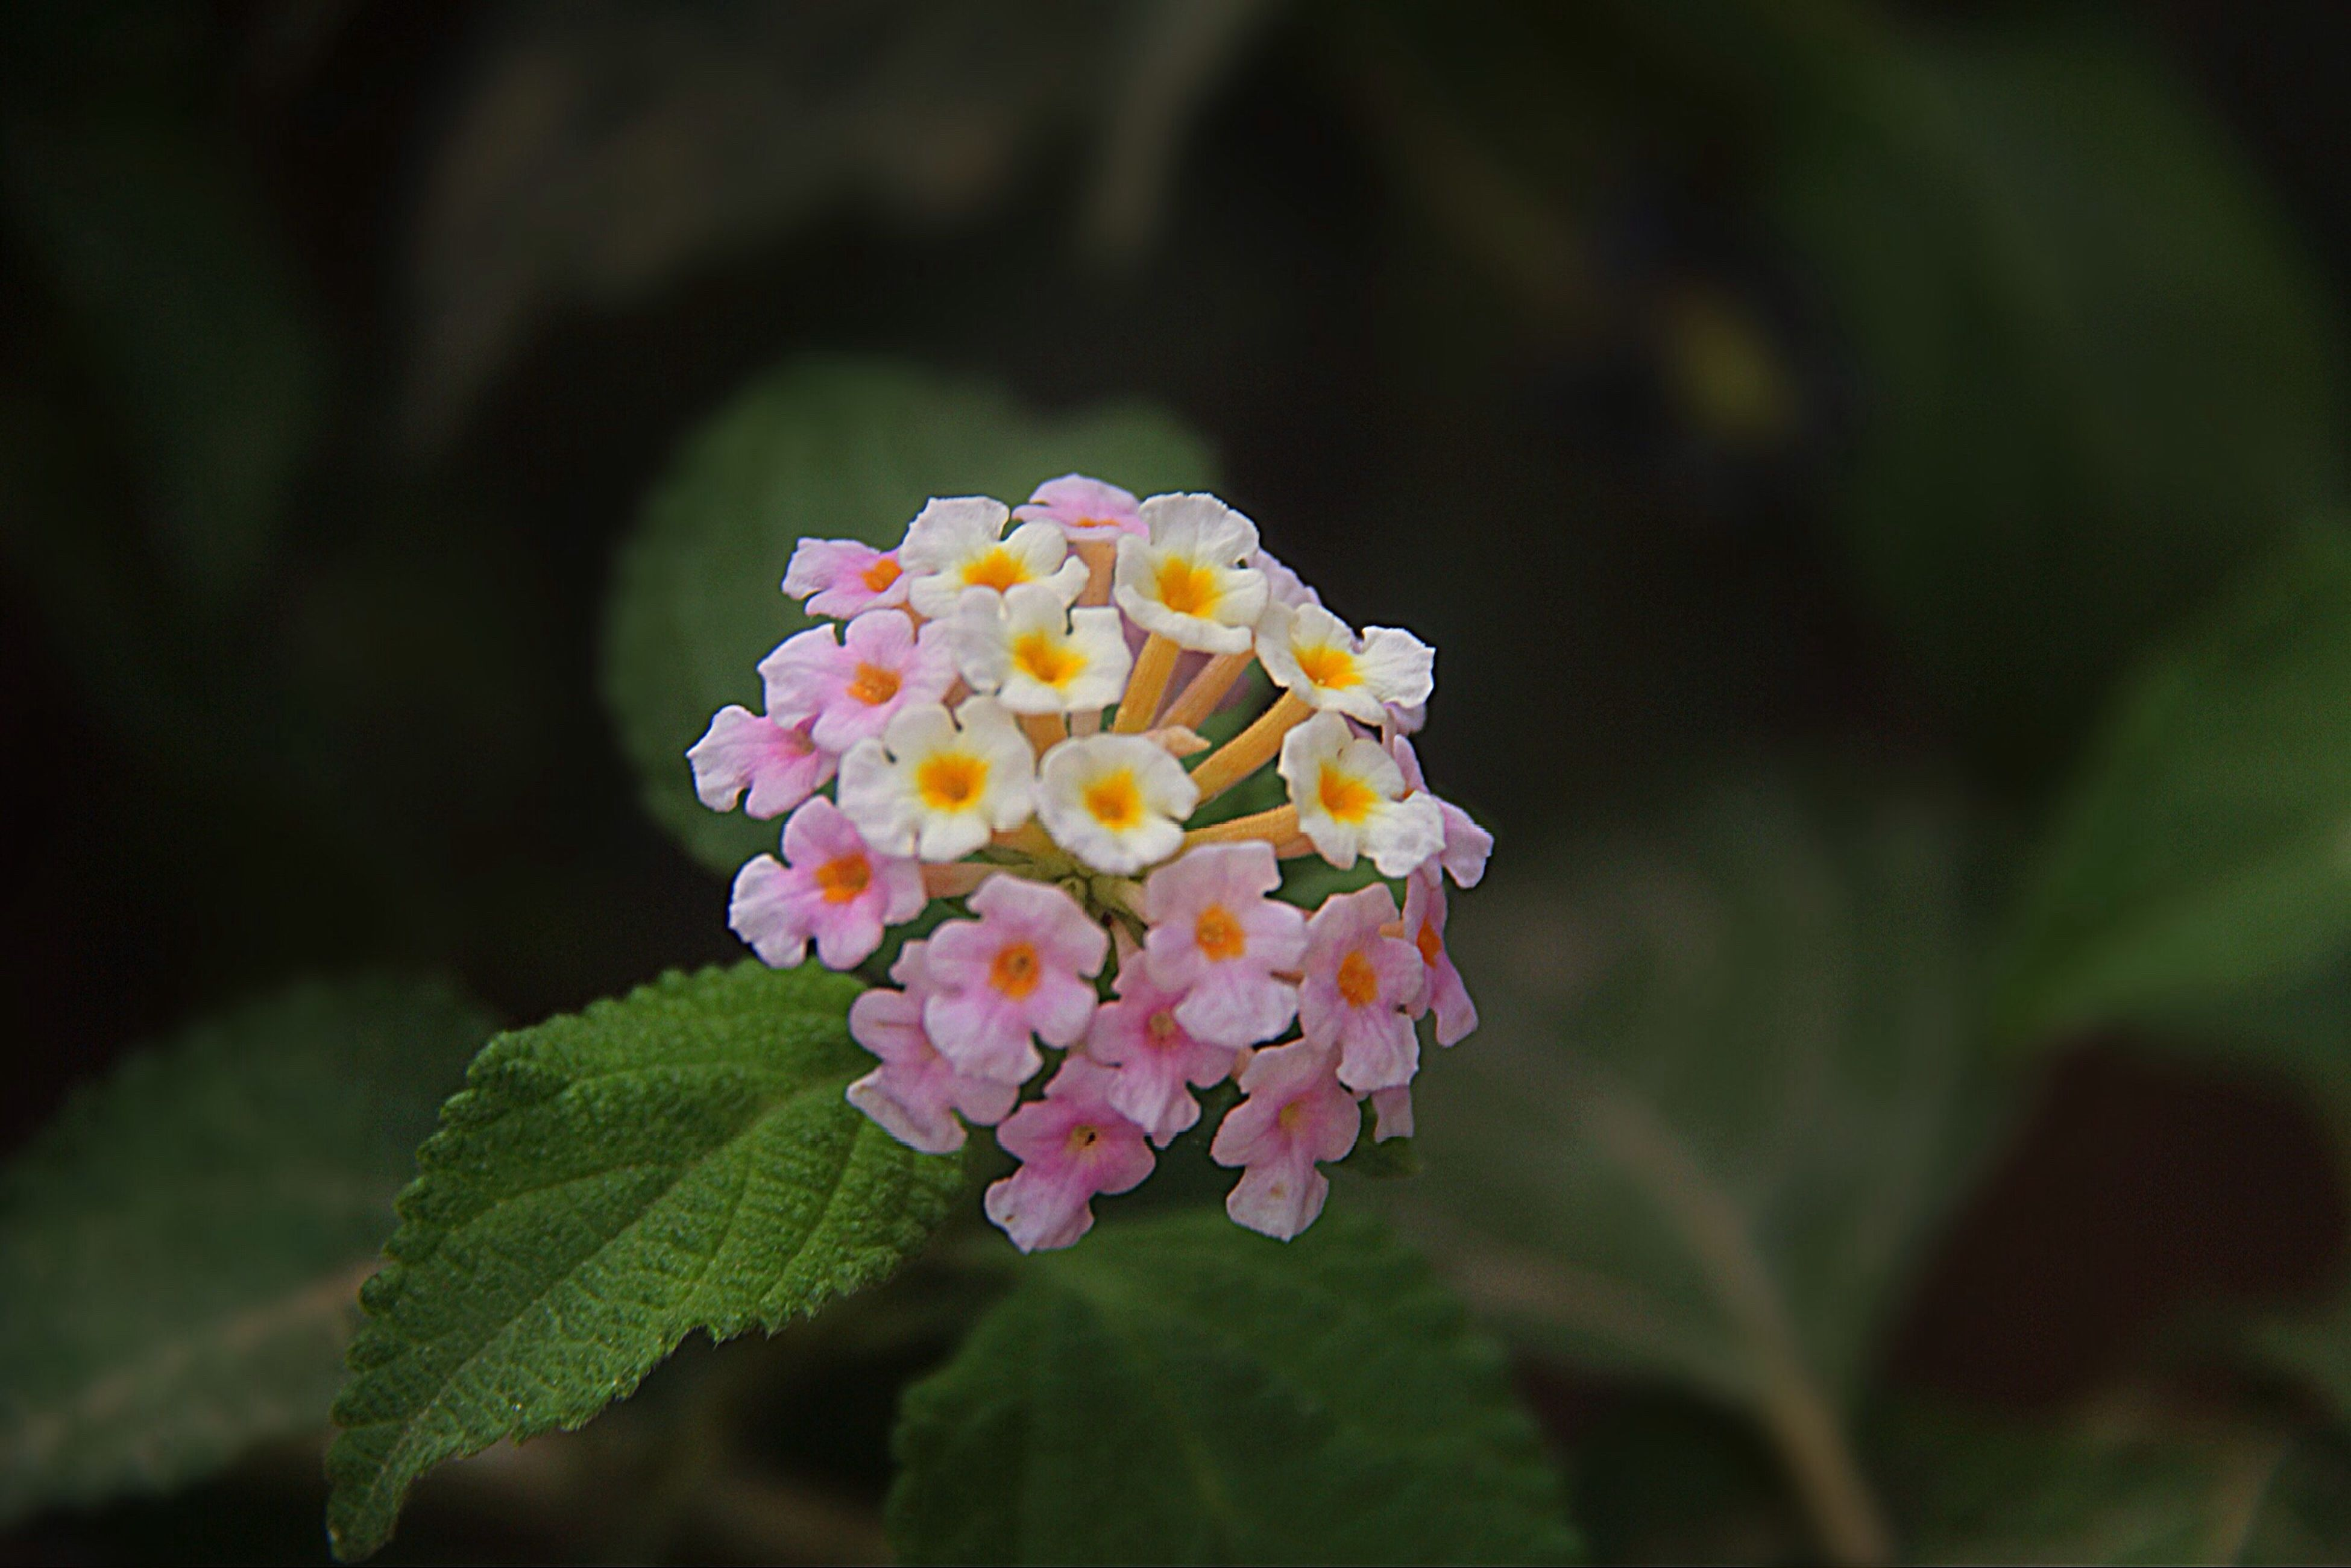 flower, fragility, beauty in nature, freshness, nature, plant, petal, lantana, focus on foreground, flower head, close-up, leaf, blooming, lantana camara, growth, zinnia, pollen, day, no people, outdoors